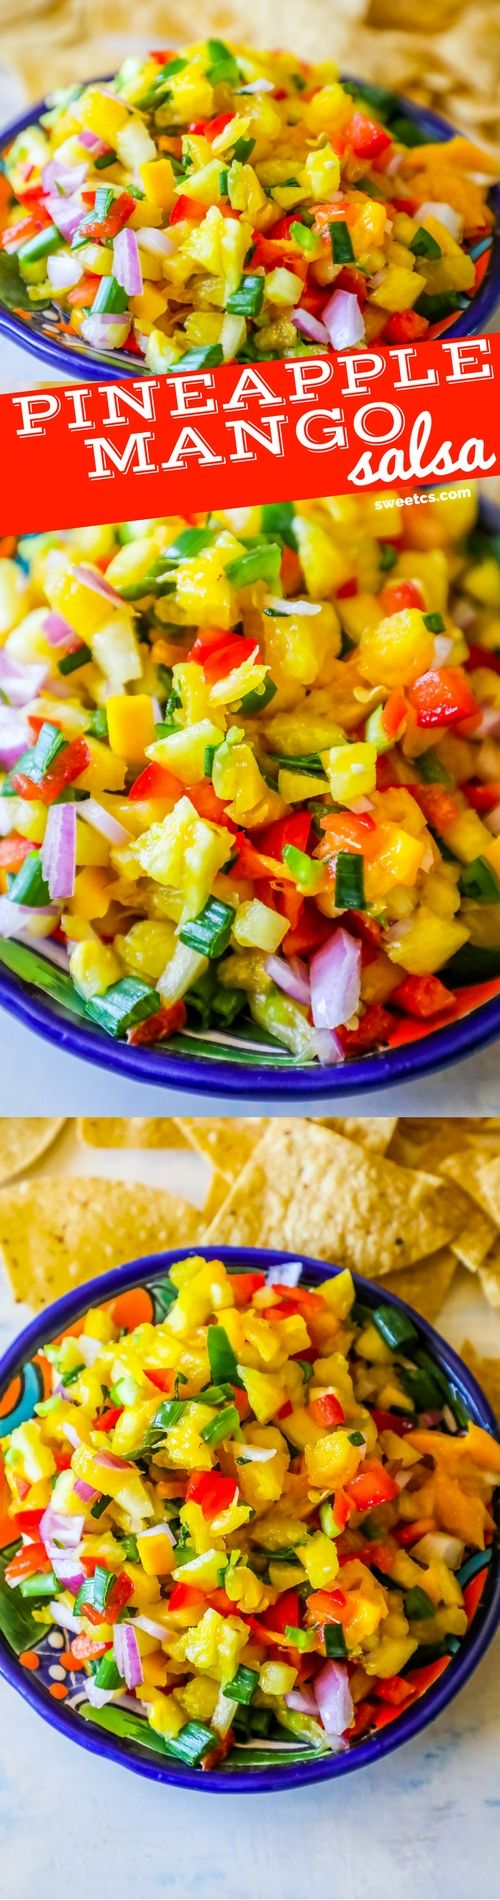 Spicy Pineapple Mango Salsa - Whole Foods Knockoff - Sweet C's Designs(Whole 30 Recipes Seafood)